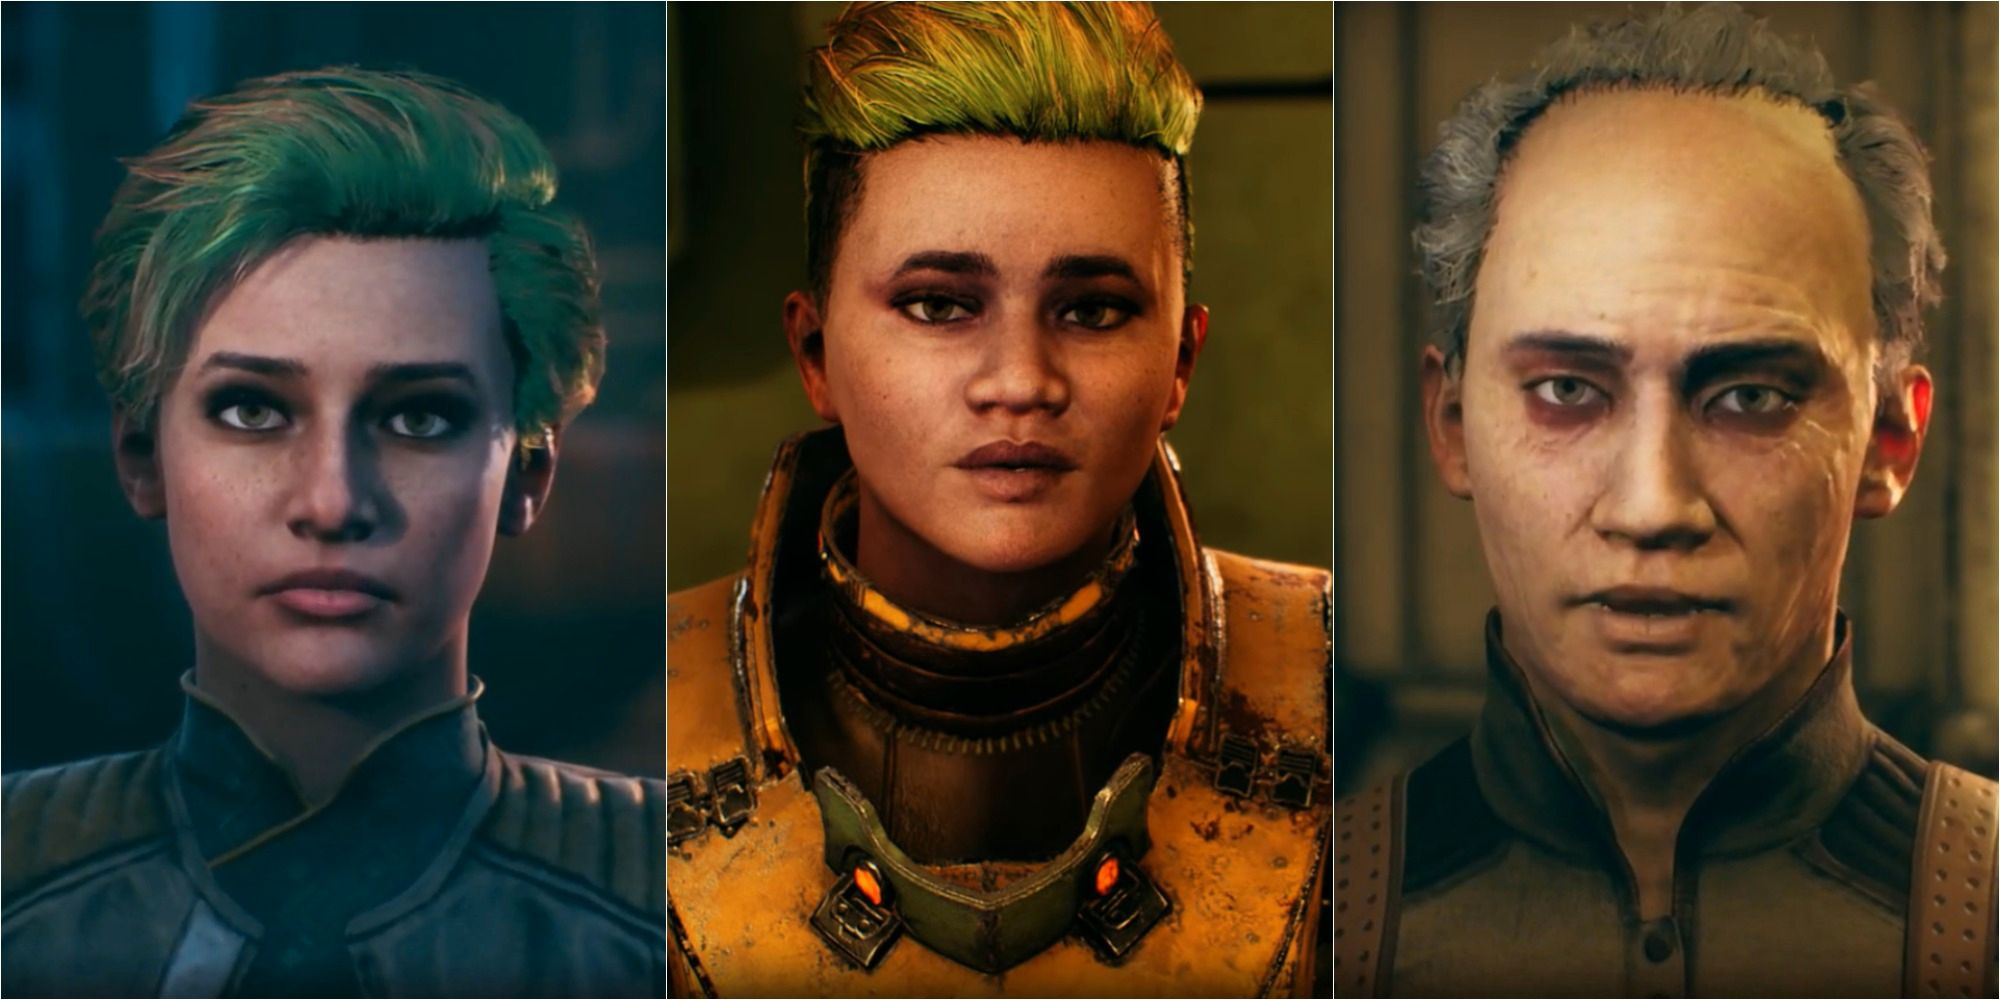 The Outer Worlds: The Long Tomorrow Quest Tutorial